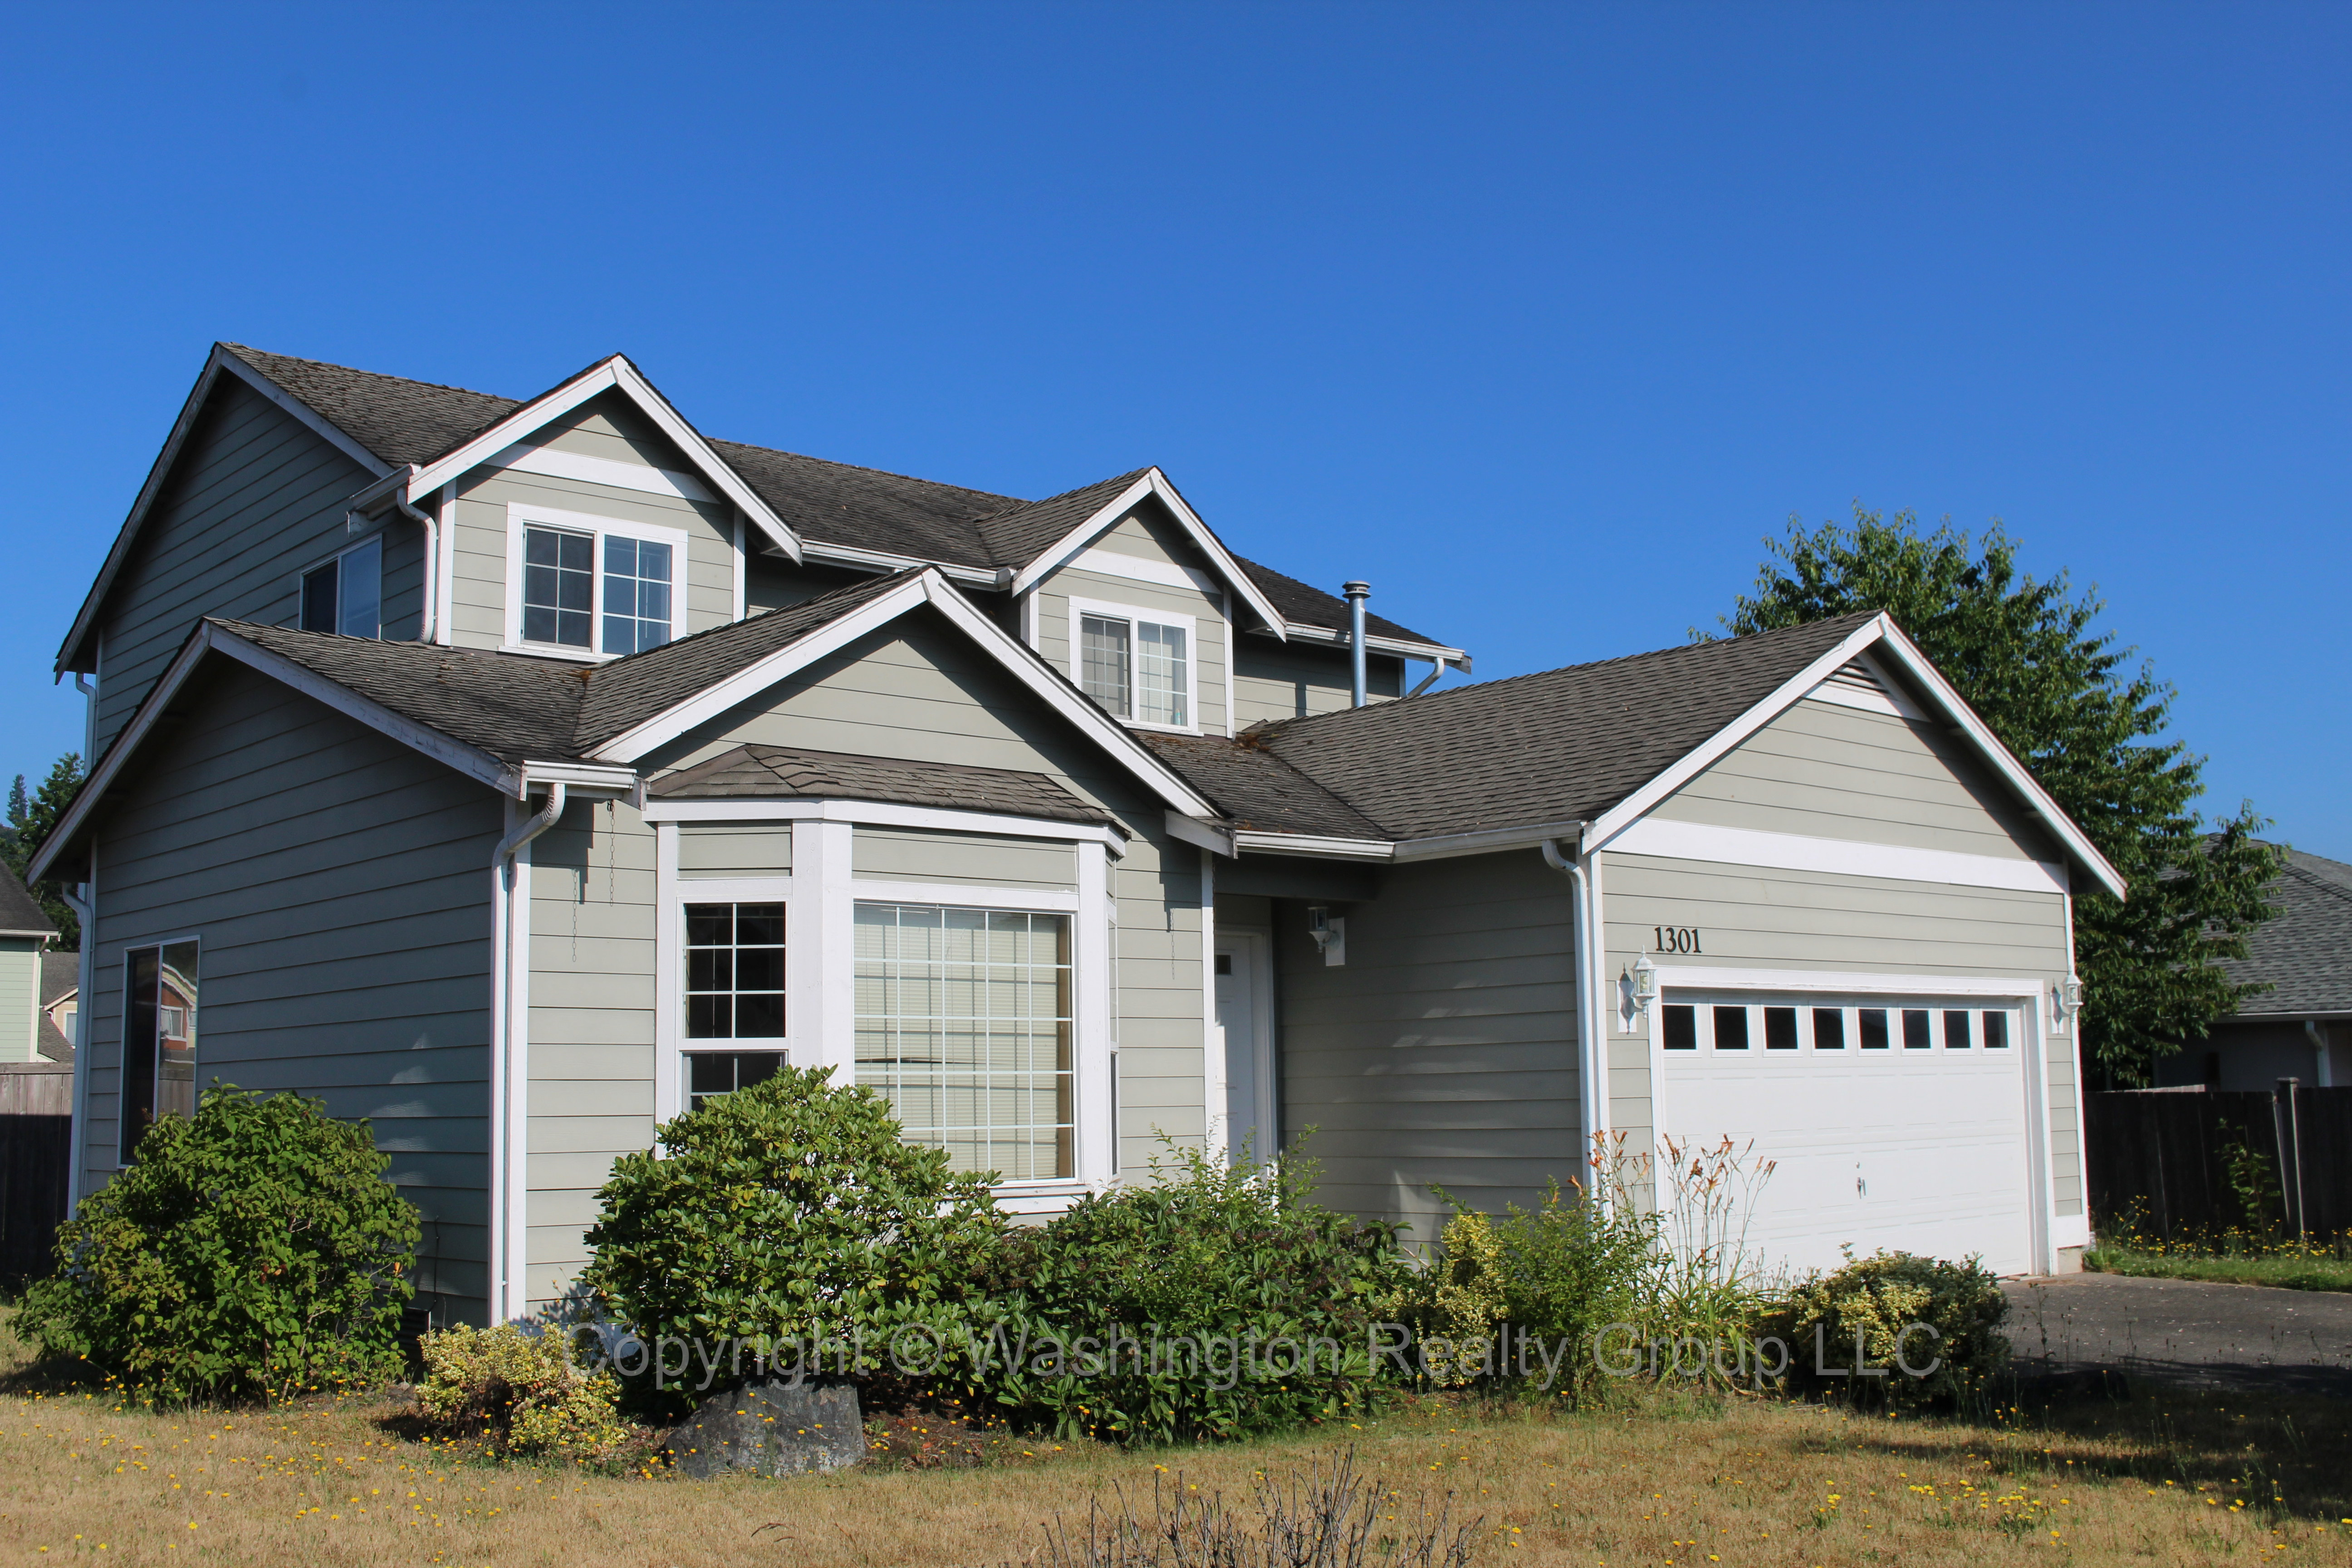 Front yard of Home for sale in Orting